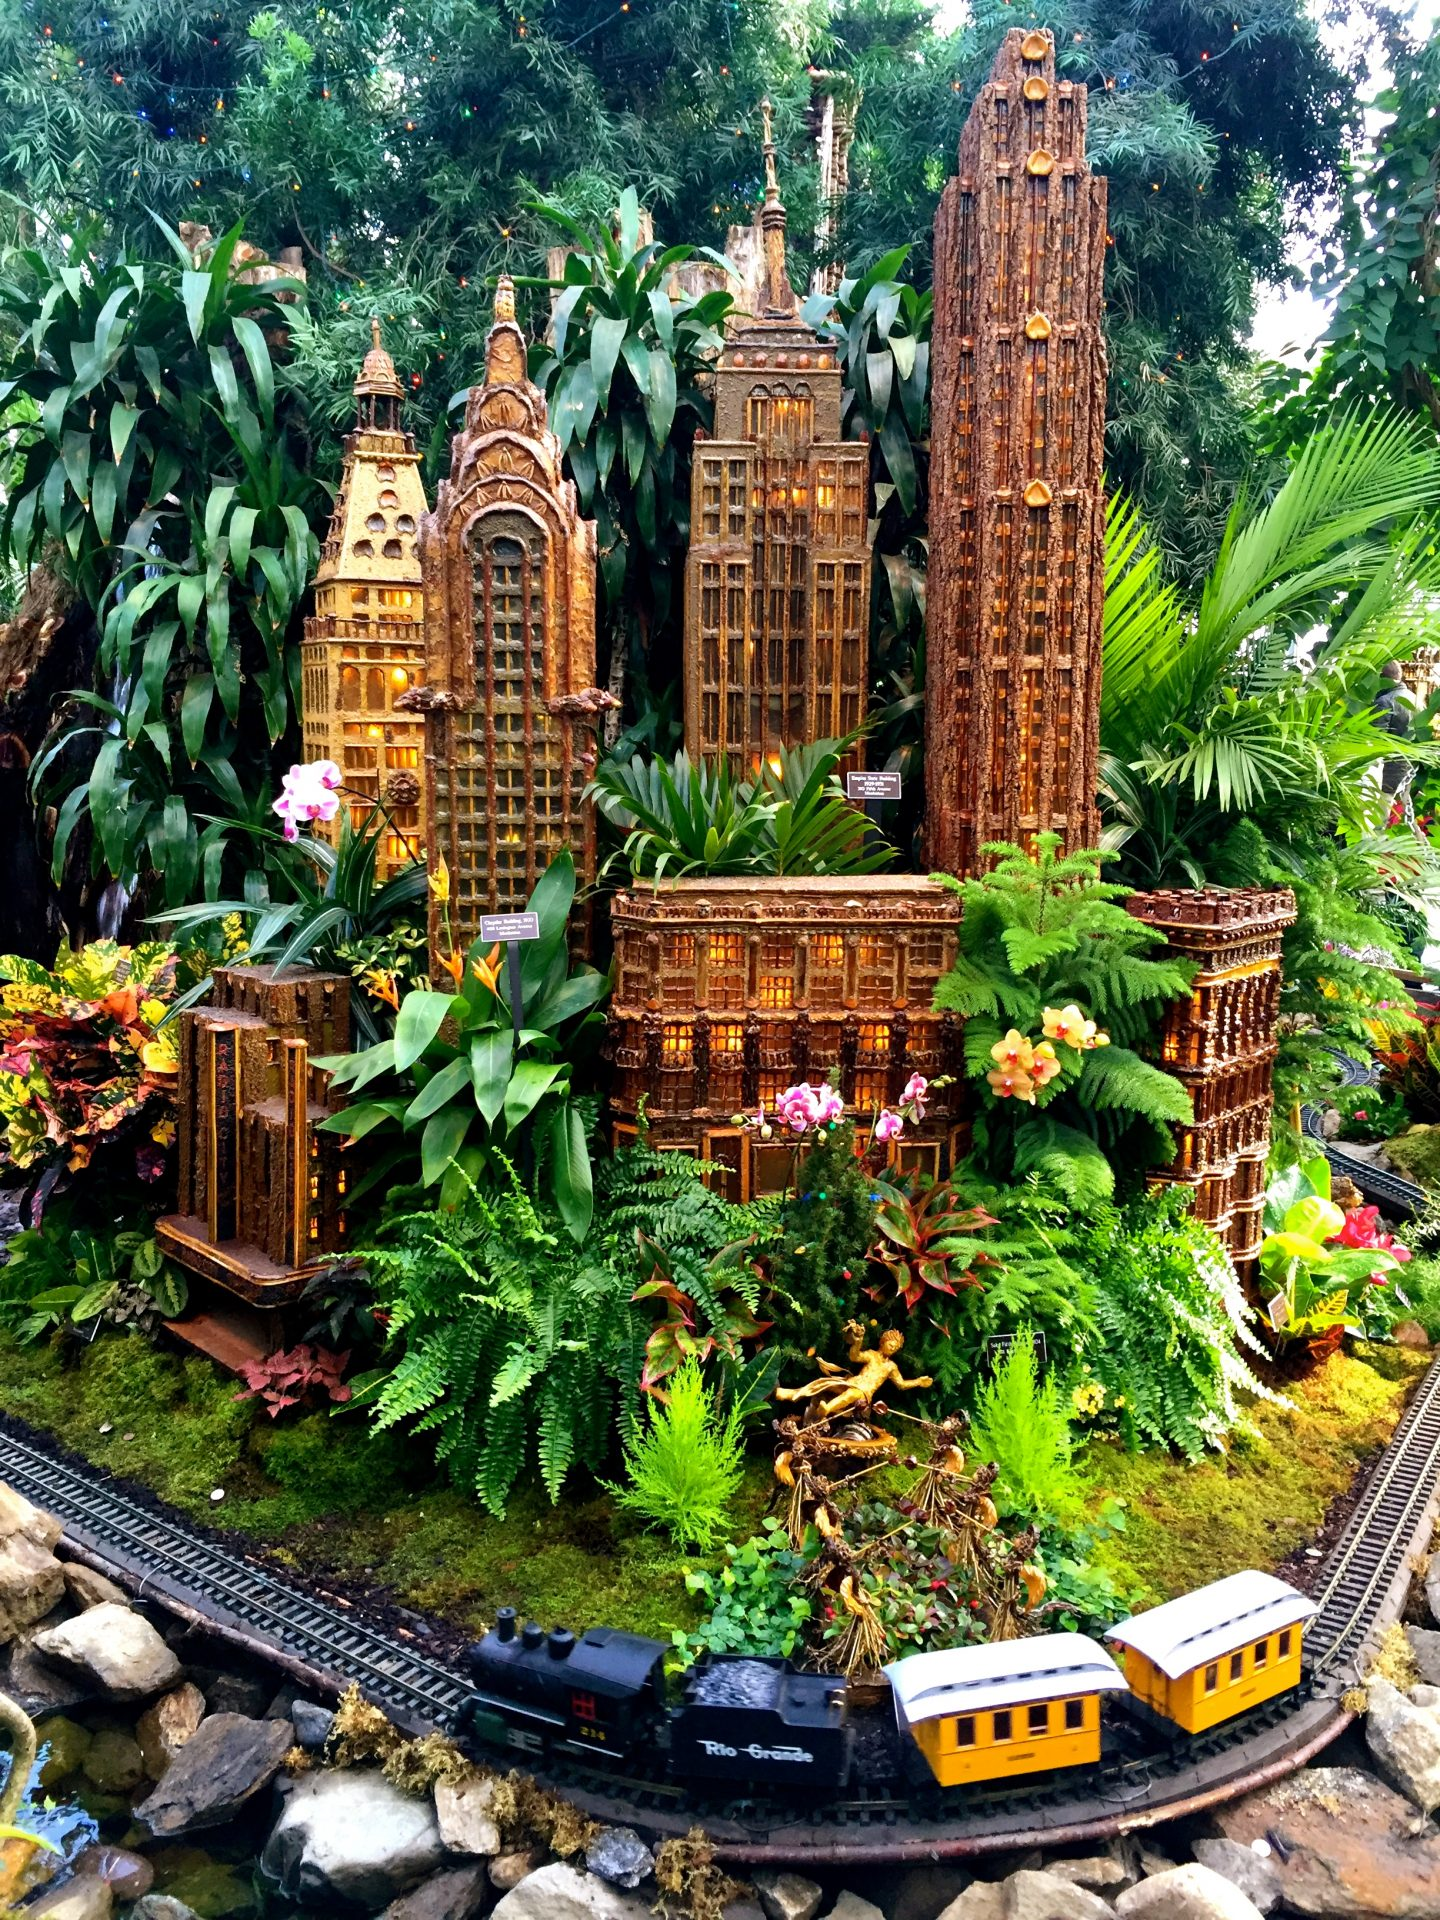 Guide to the holiday train show at the new york botanical garden for New york botanical gardens train show